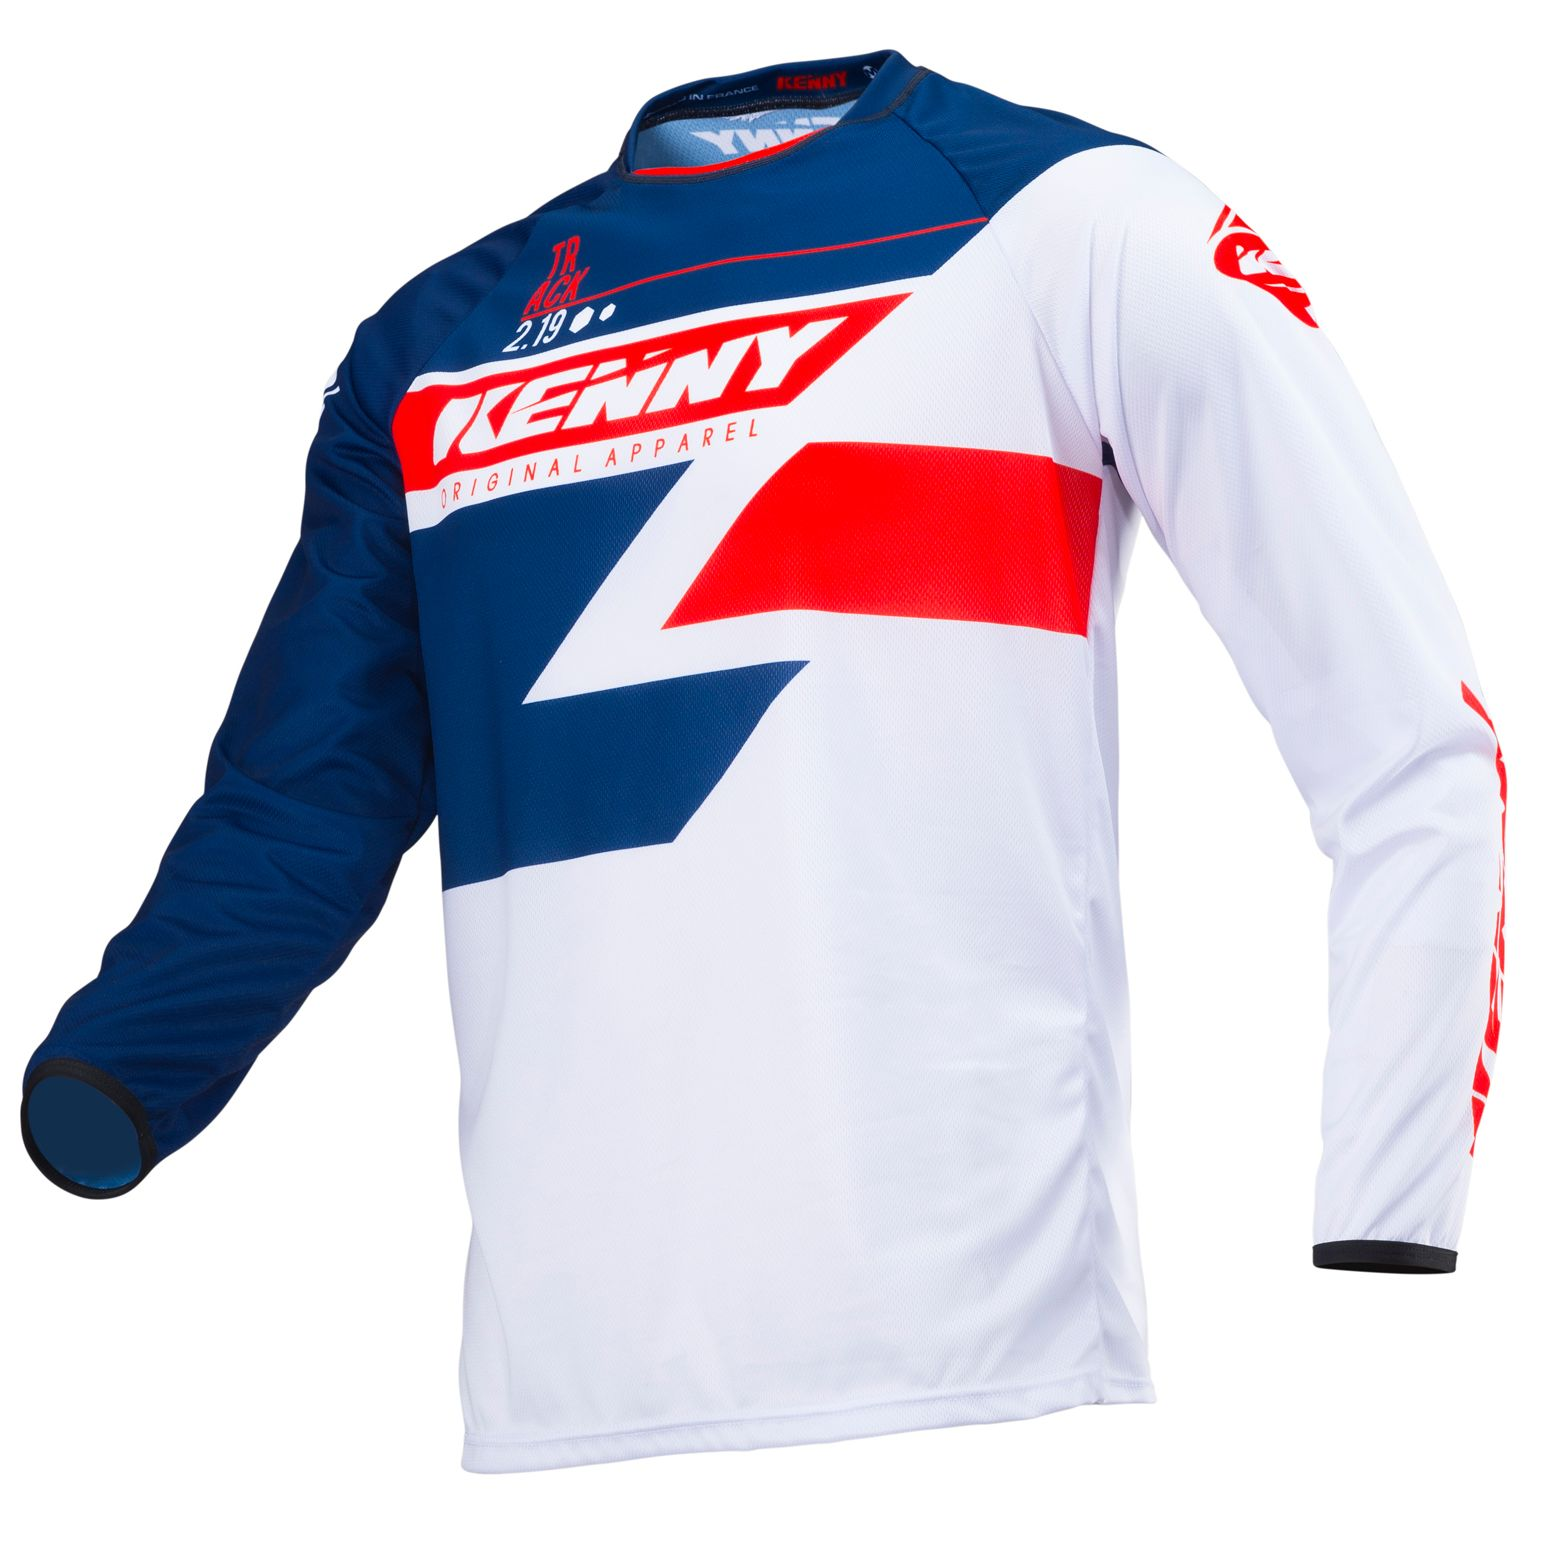 Maillot cross Kenny destockage TRACK NAVY RED 2019